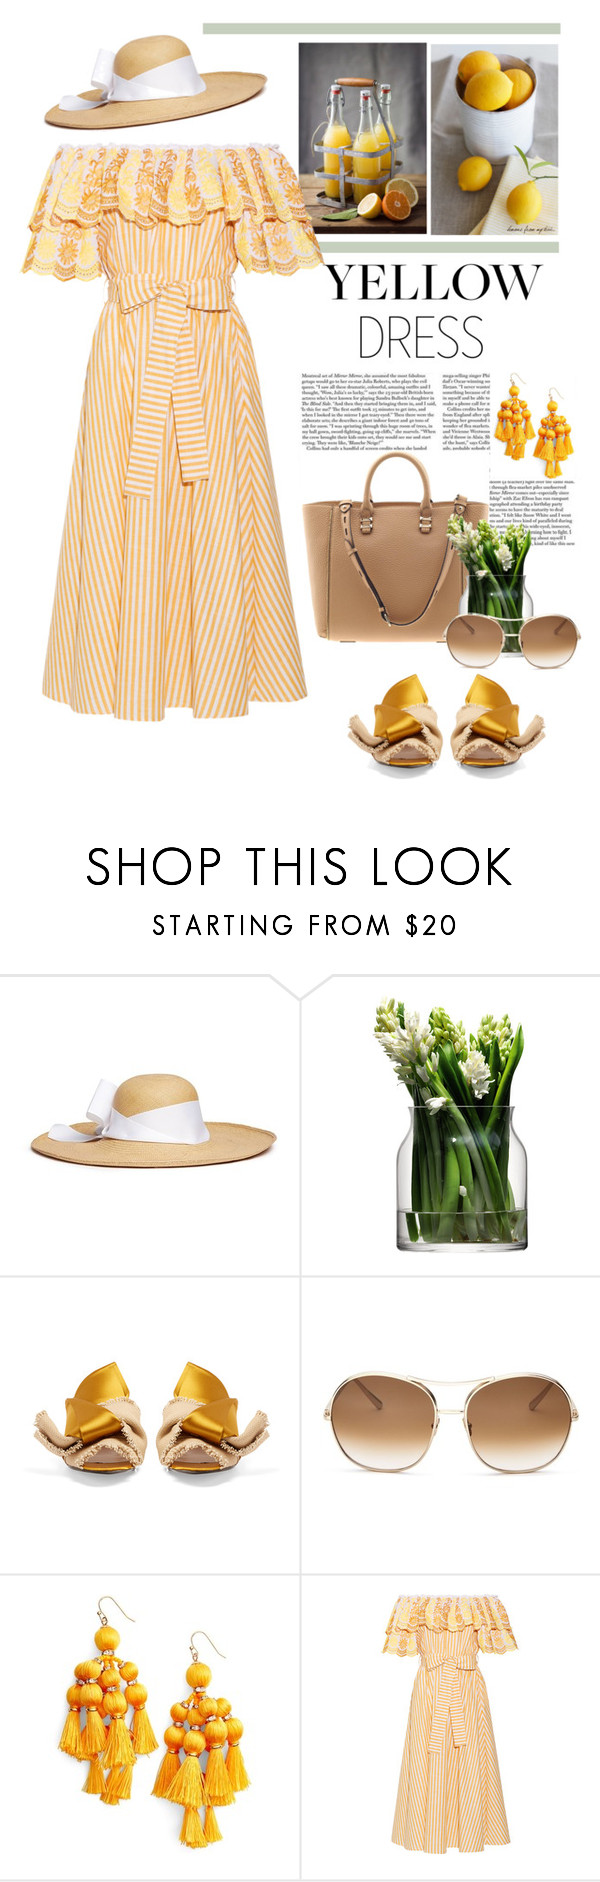 """17.03.2017"" by desdeportugal ❤ liked on Polyvore featuring Sensi Studio, Rebecca Minkoff, LSA International, N°21, Chloé, Kate Spade and Gül Hürgel"